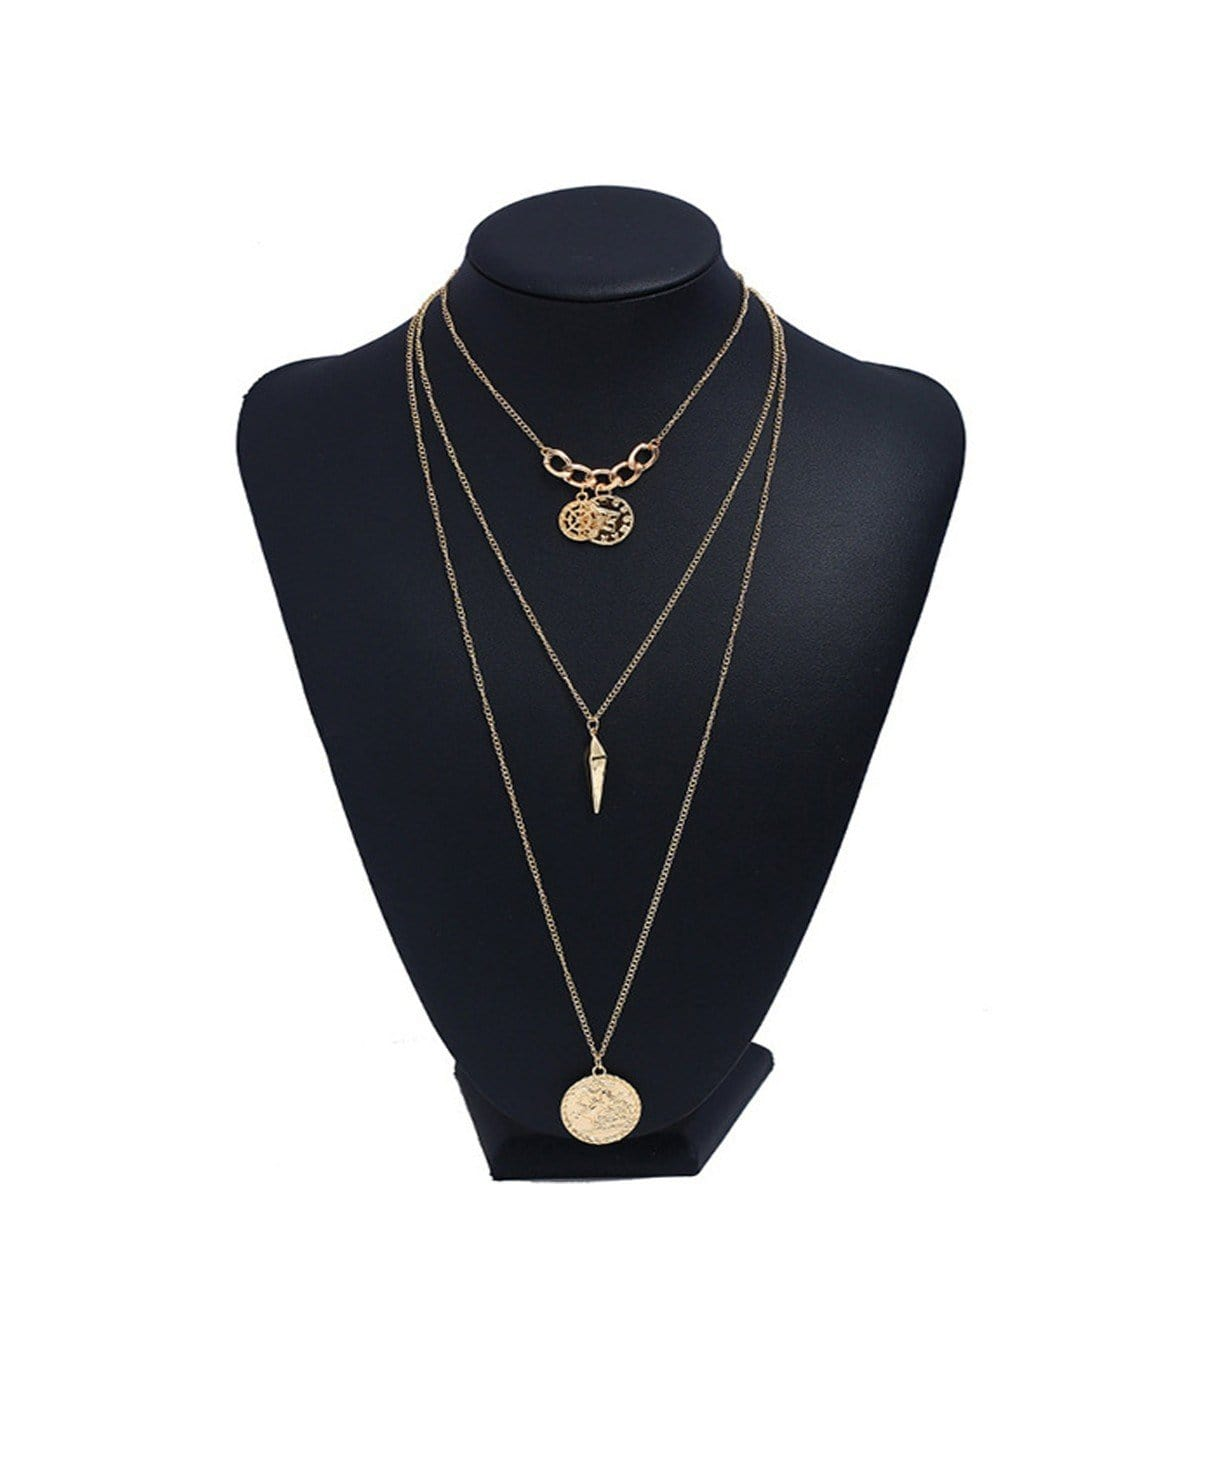 Layered Coin Pendant Necklace - Uptownie